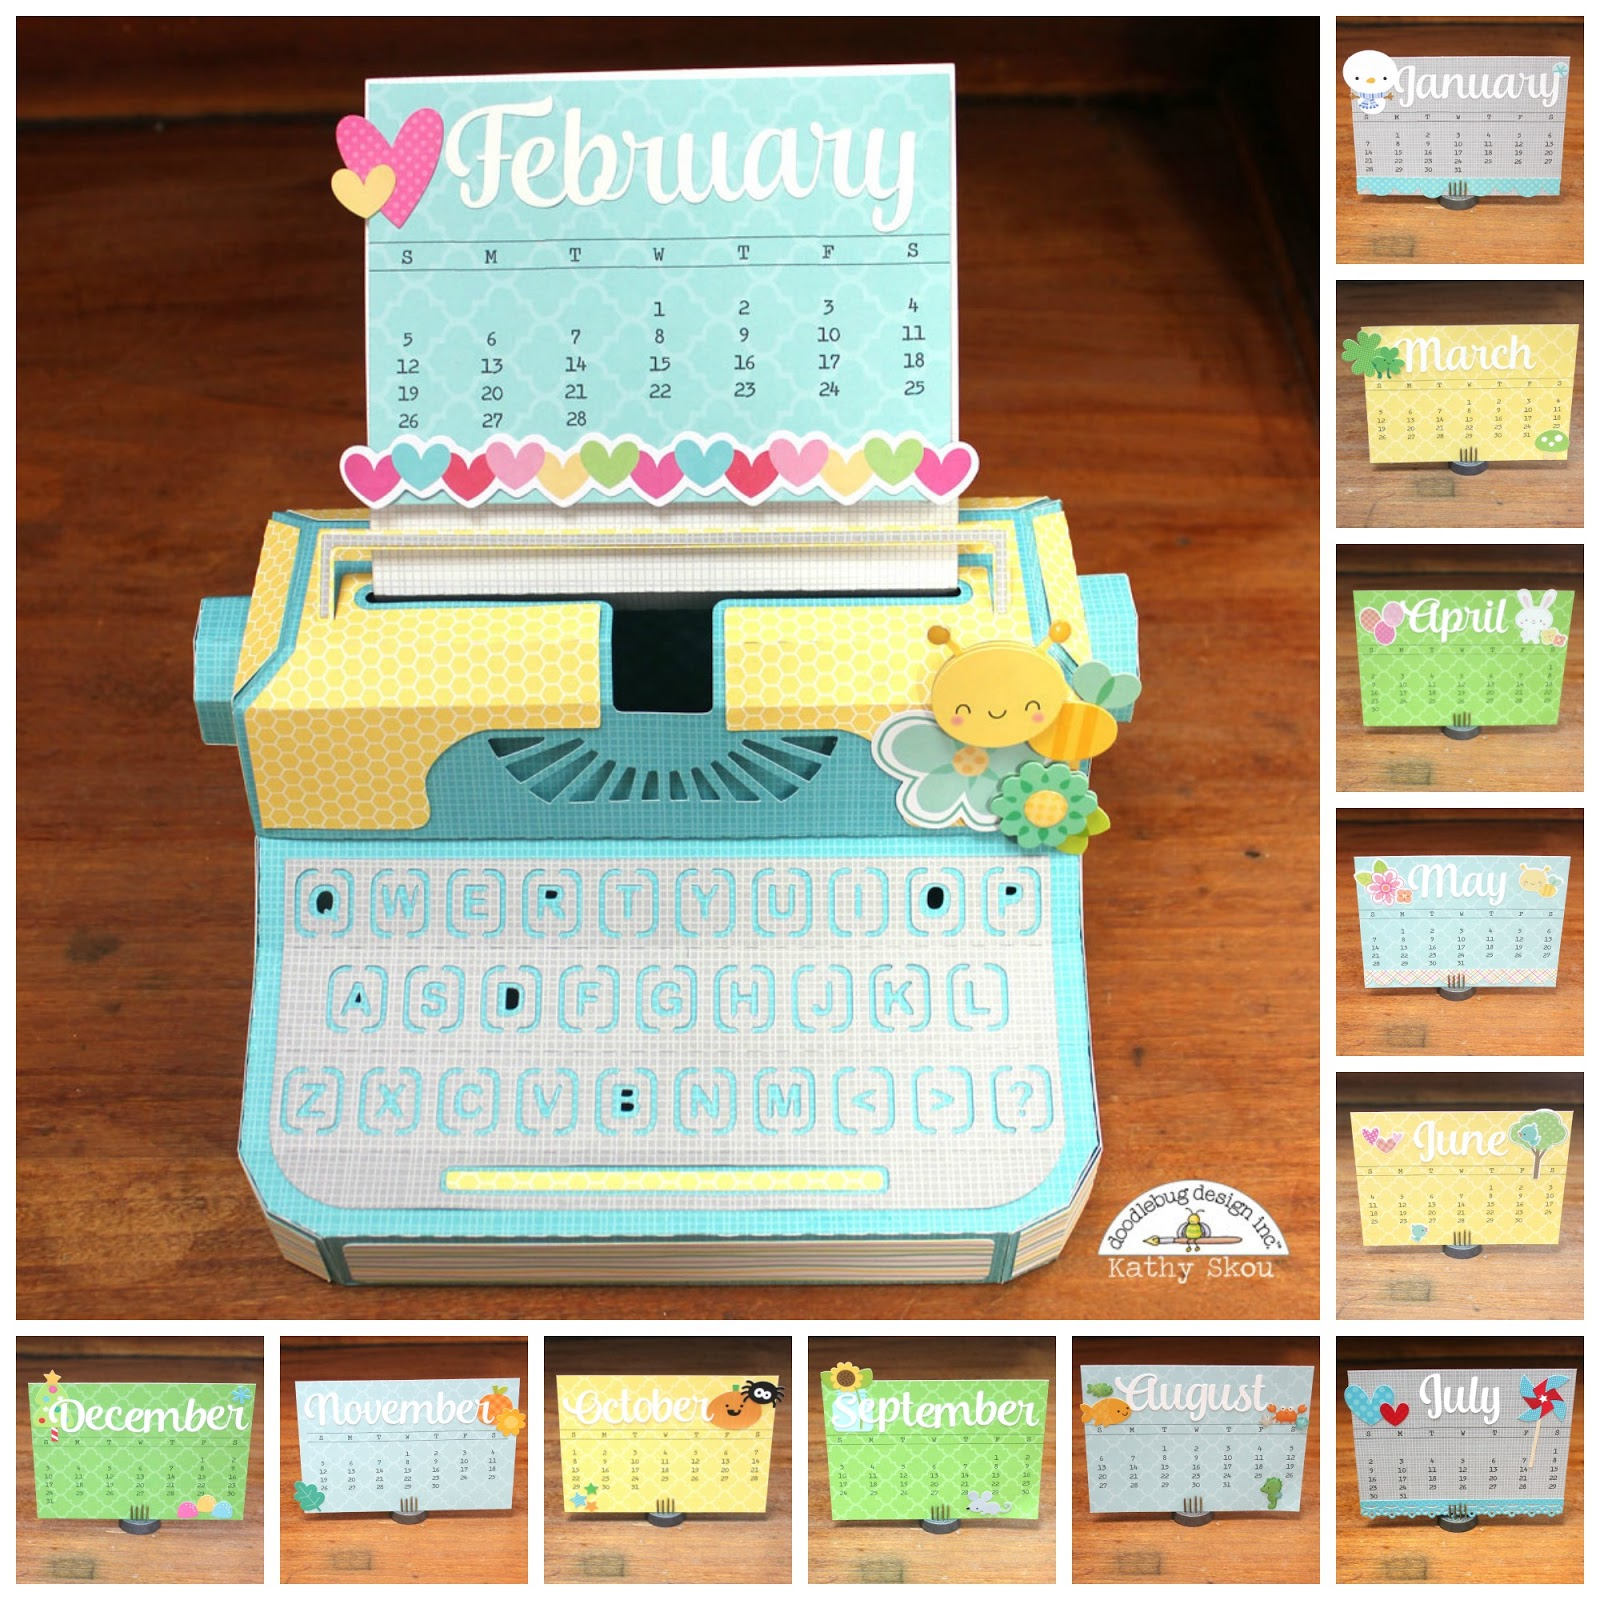 Calendar Head Design : Doodlebug design inc calendar challenge fun d